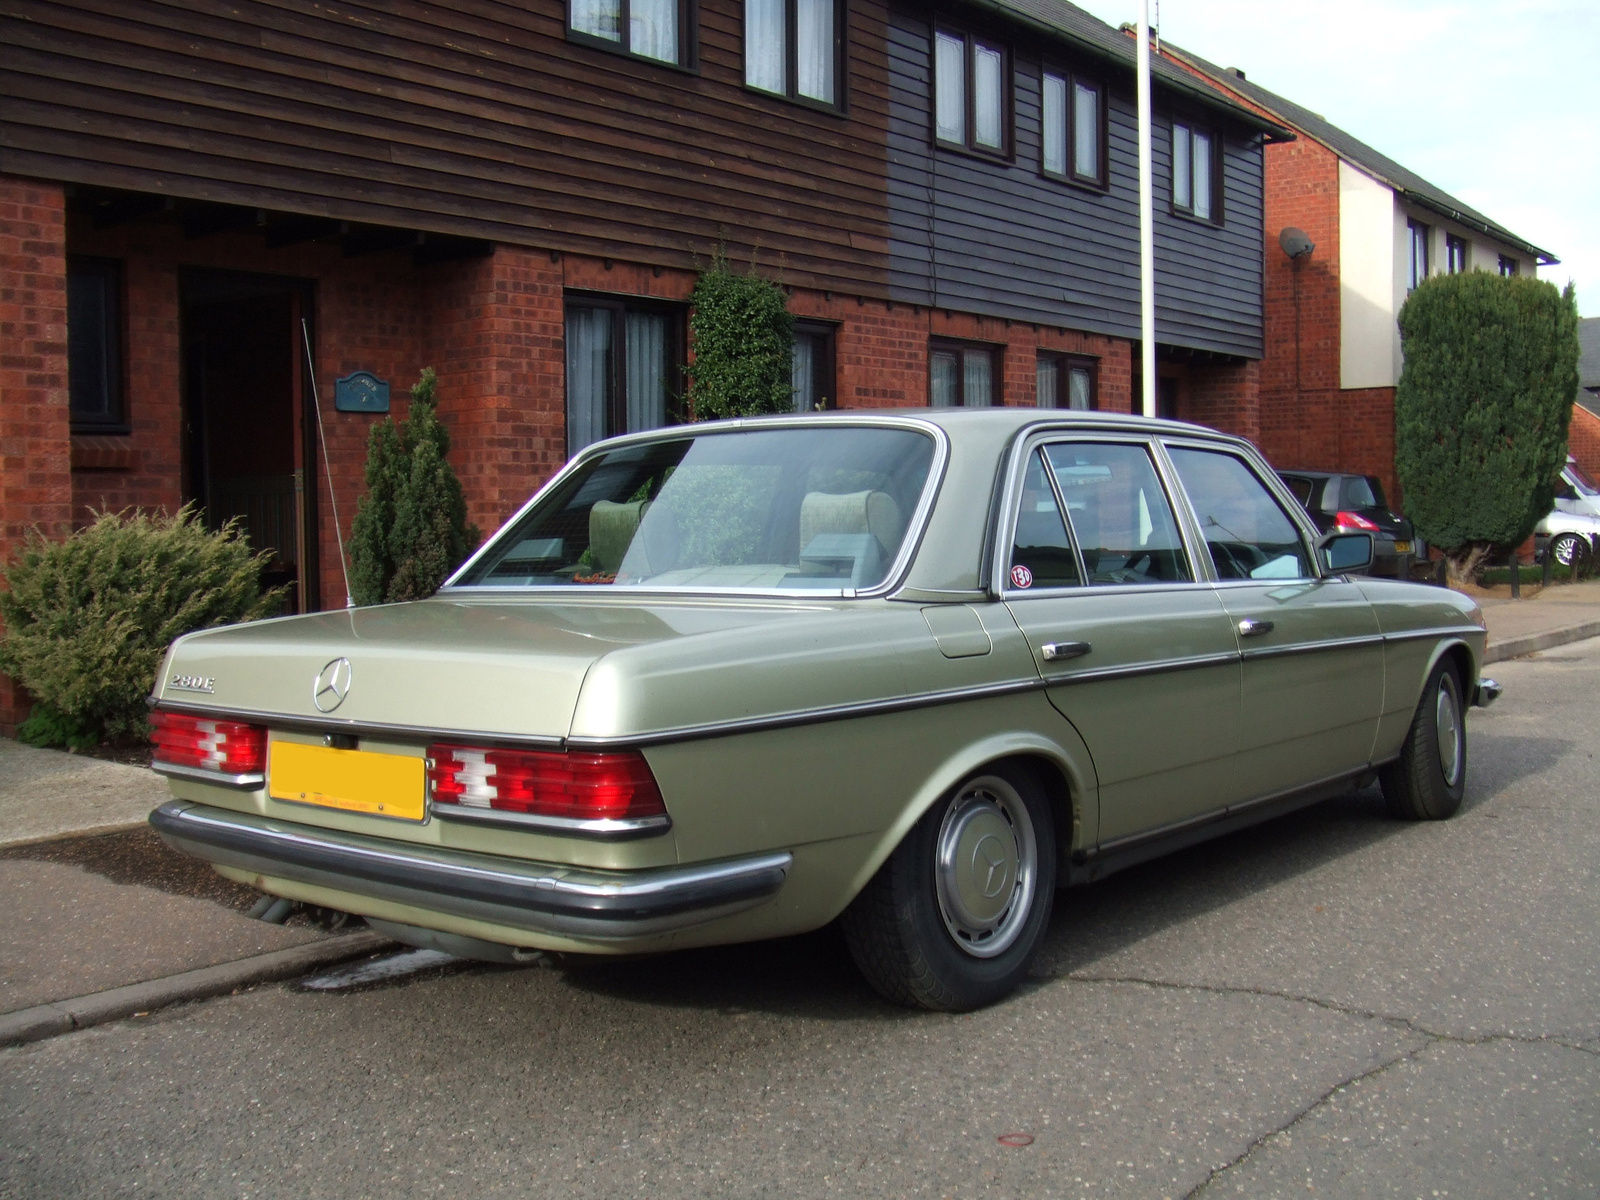 1984 mercedes benz 280 other pictures cargurus for 1984 mercedes benz